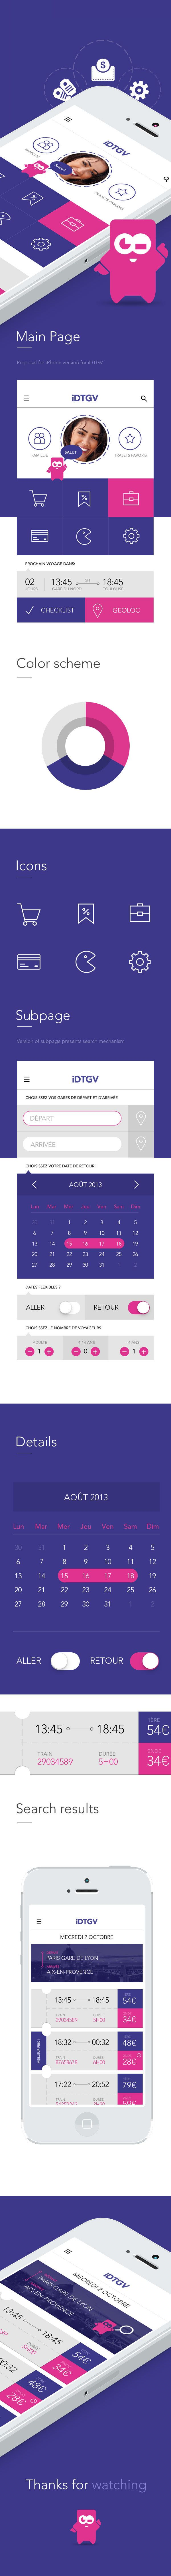 iOS7 Proposal iDTGV on Behance